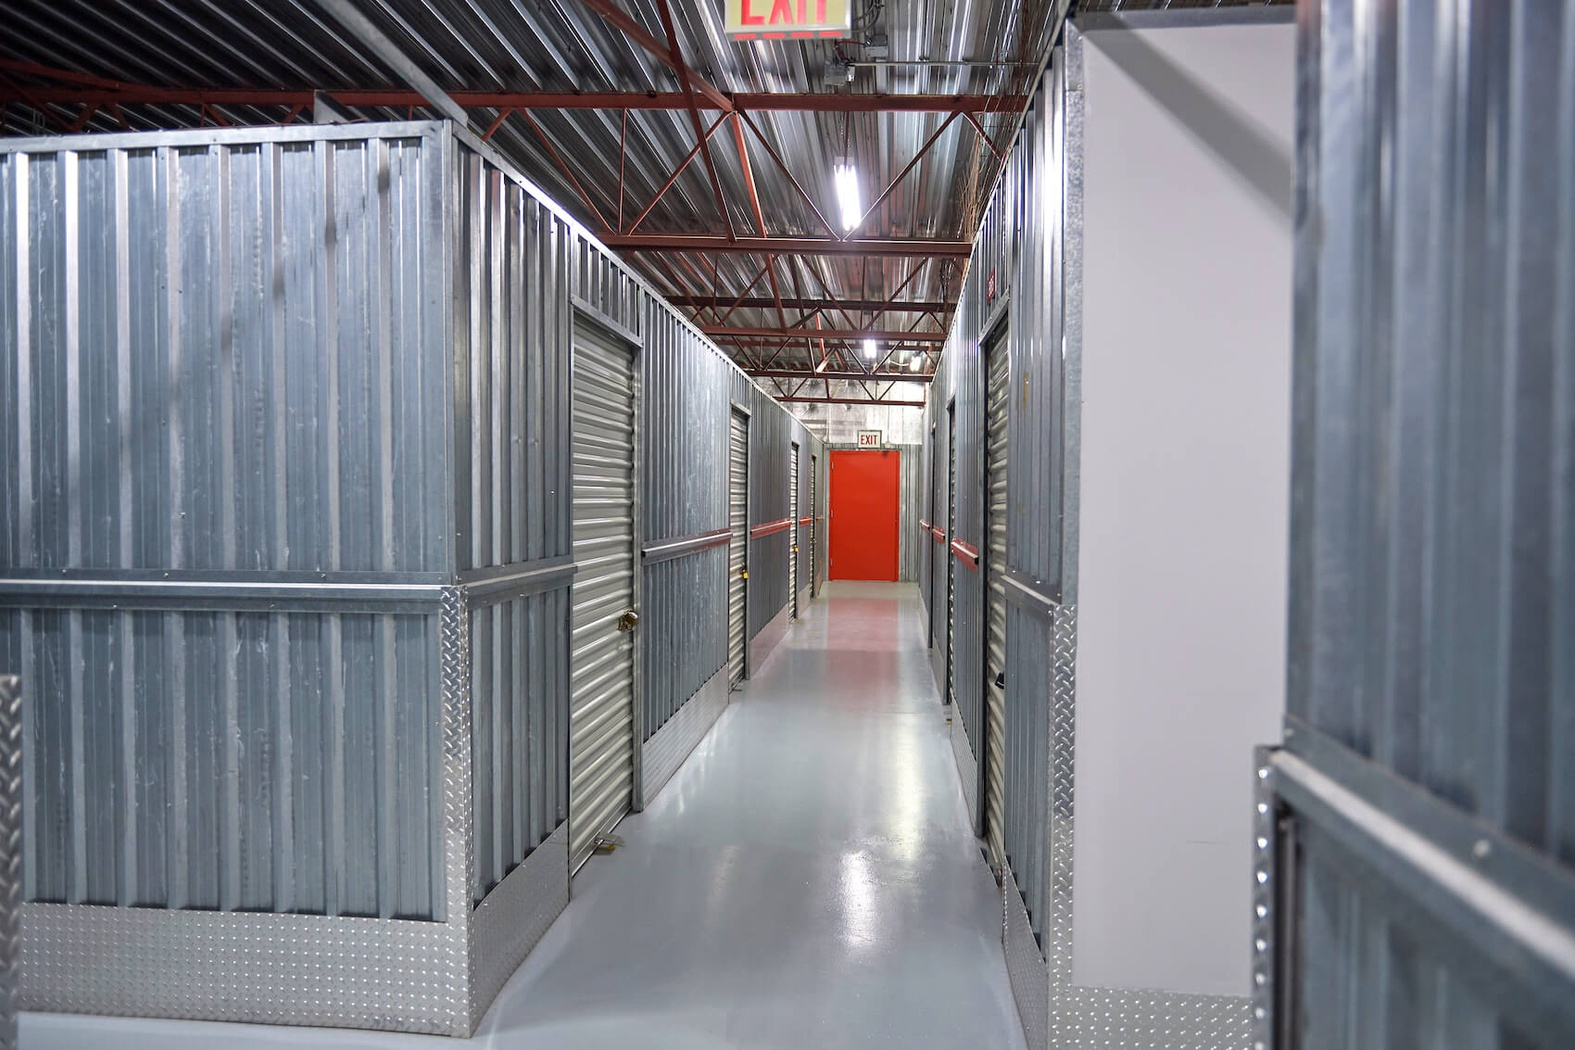 Rent Calgary storage units at 2135 Pegasus Rd NE. We offer a wide-range of affordable self storage units and your first 4 weeks are free!